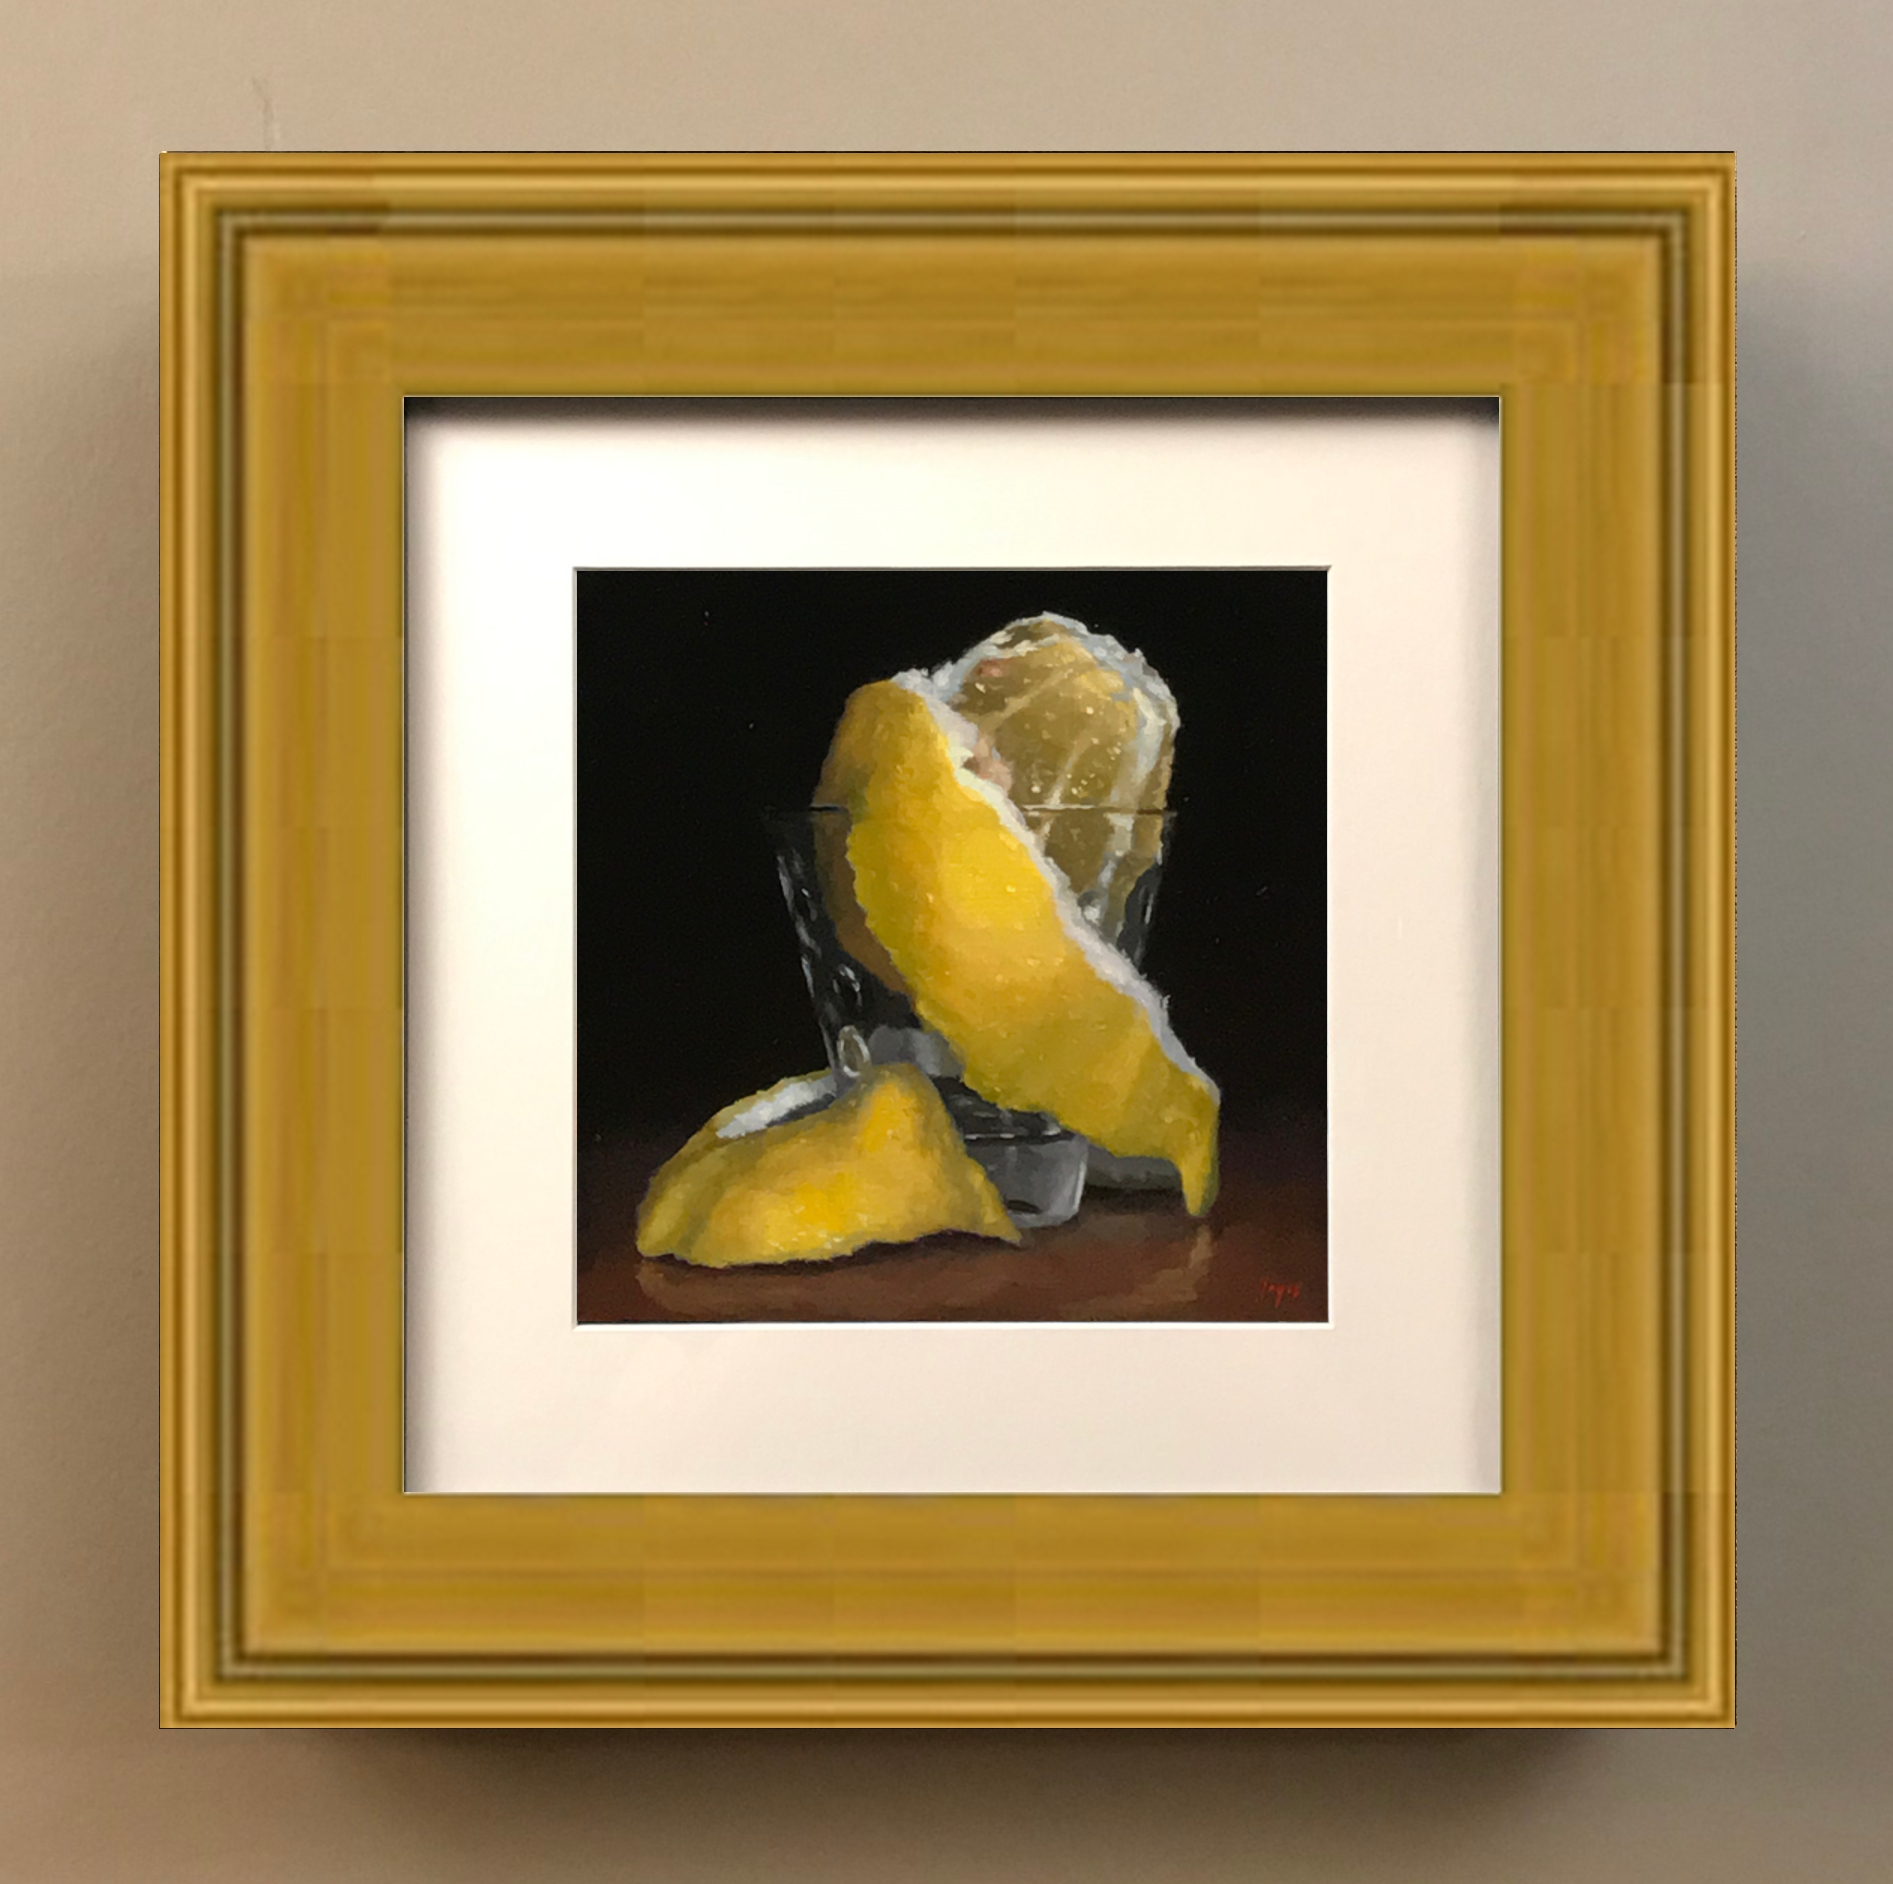 Matted Print with Gold Frame